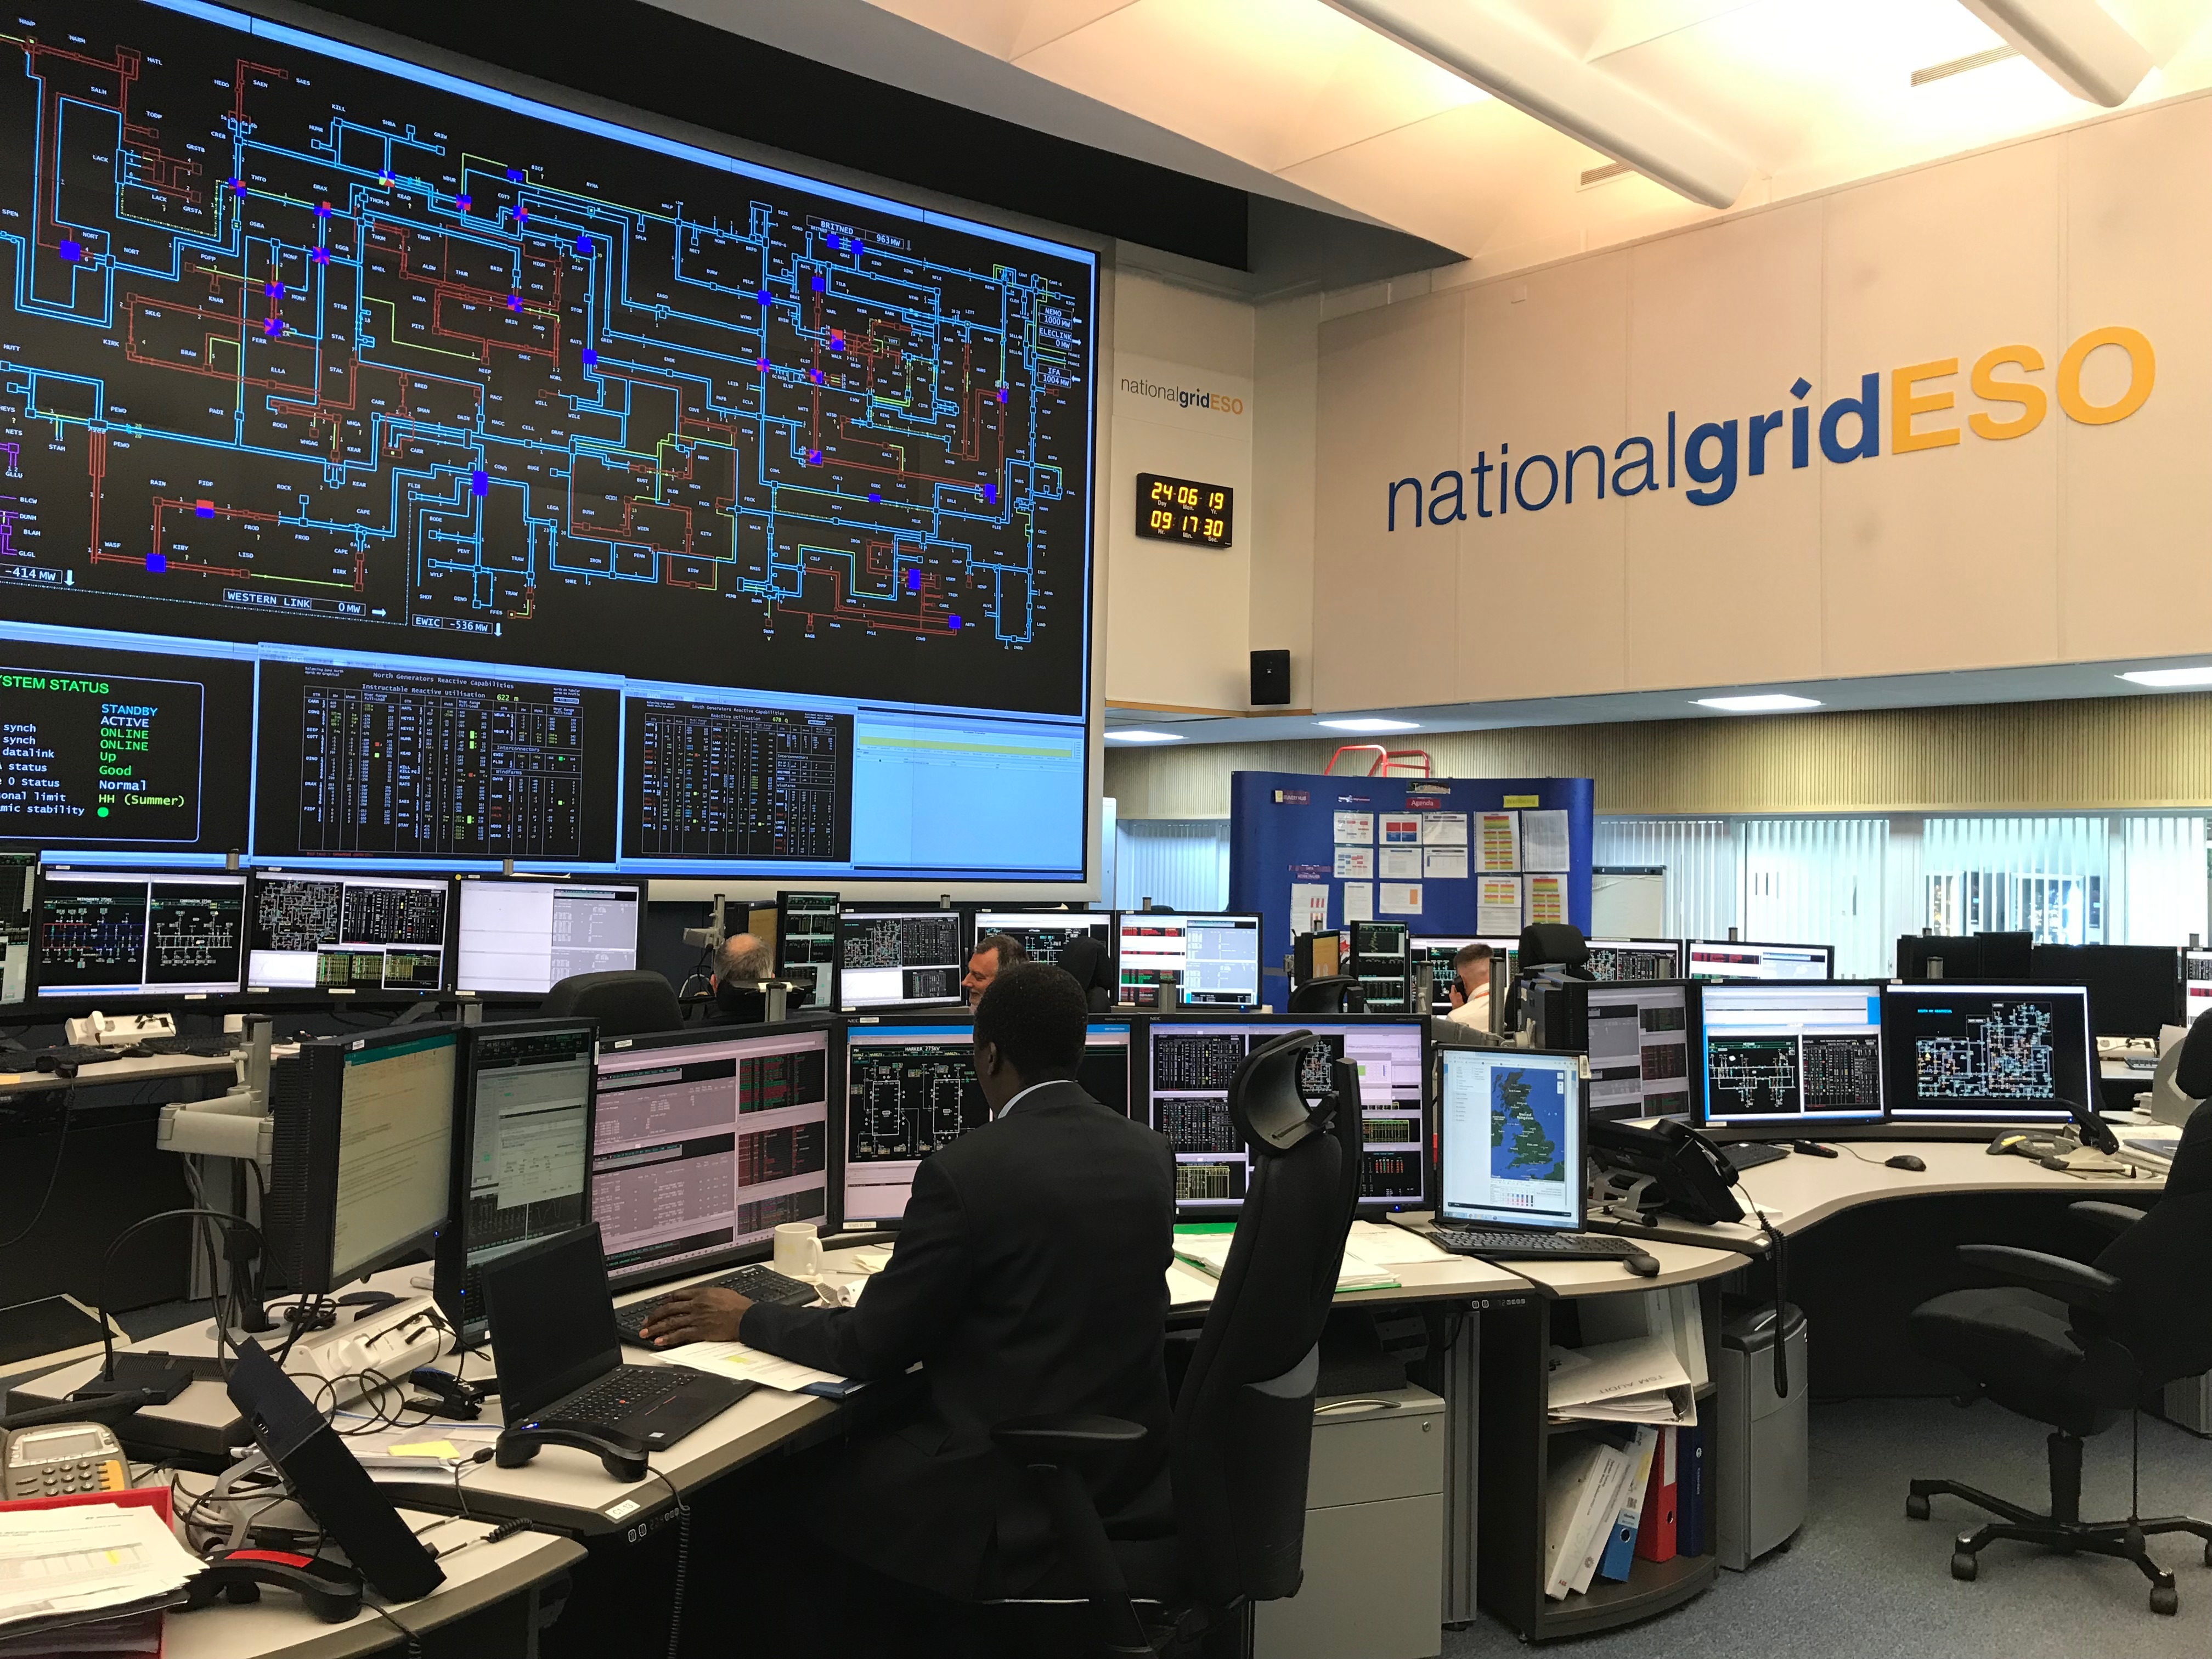 National Grid ESO - Electricity Control Centre 1